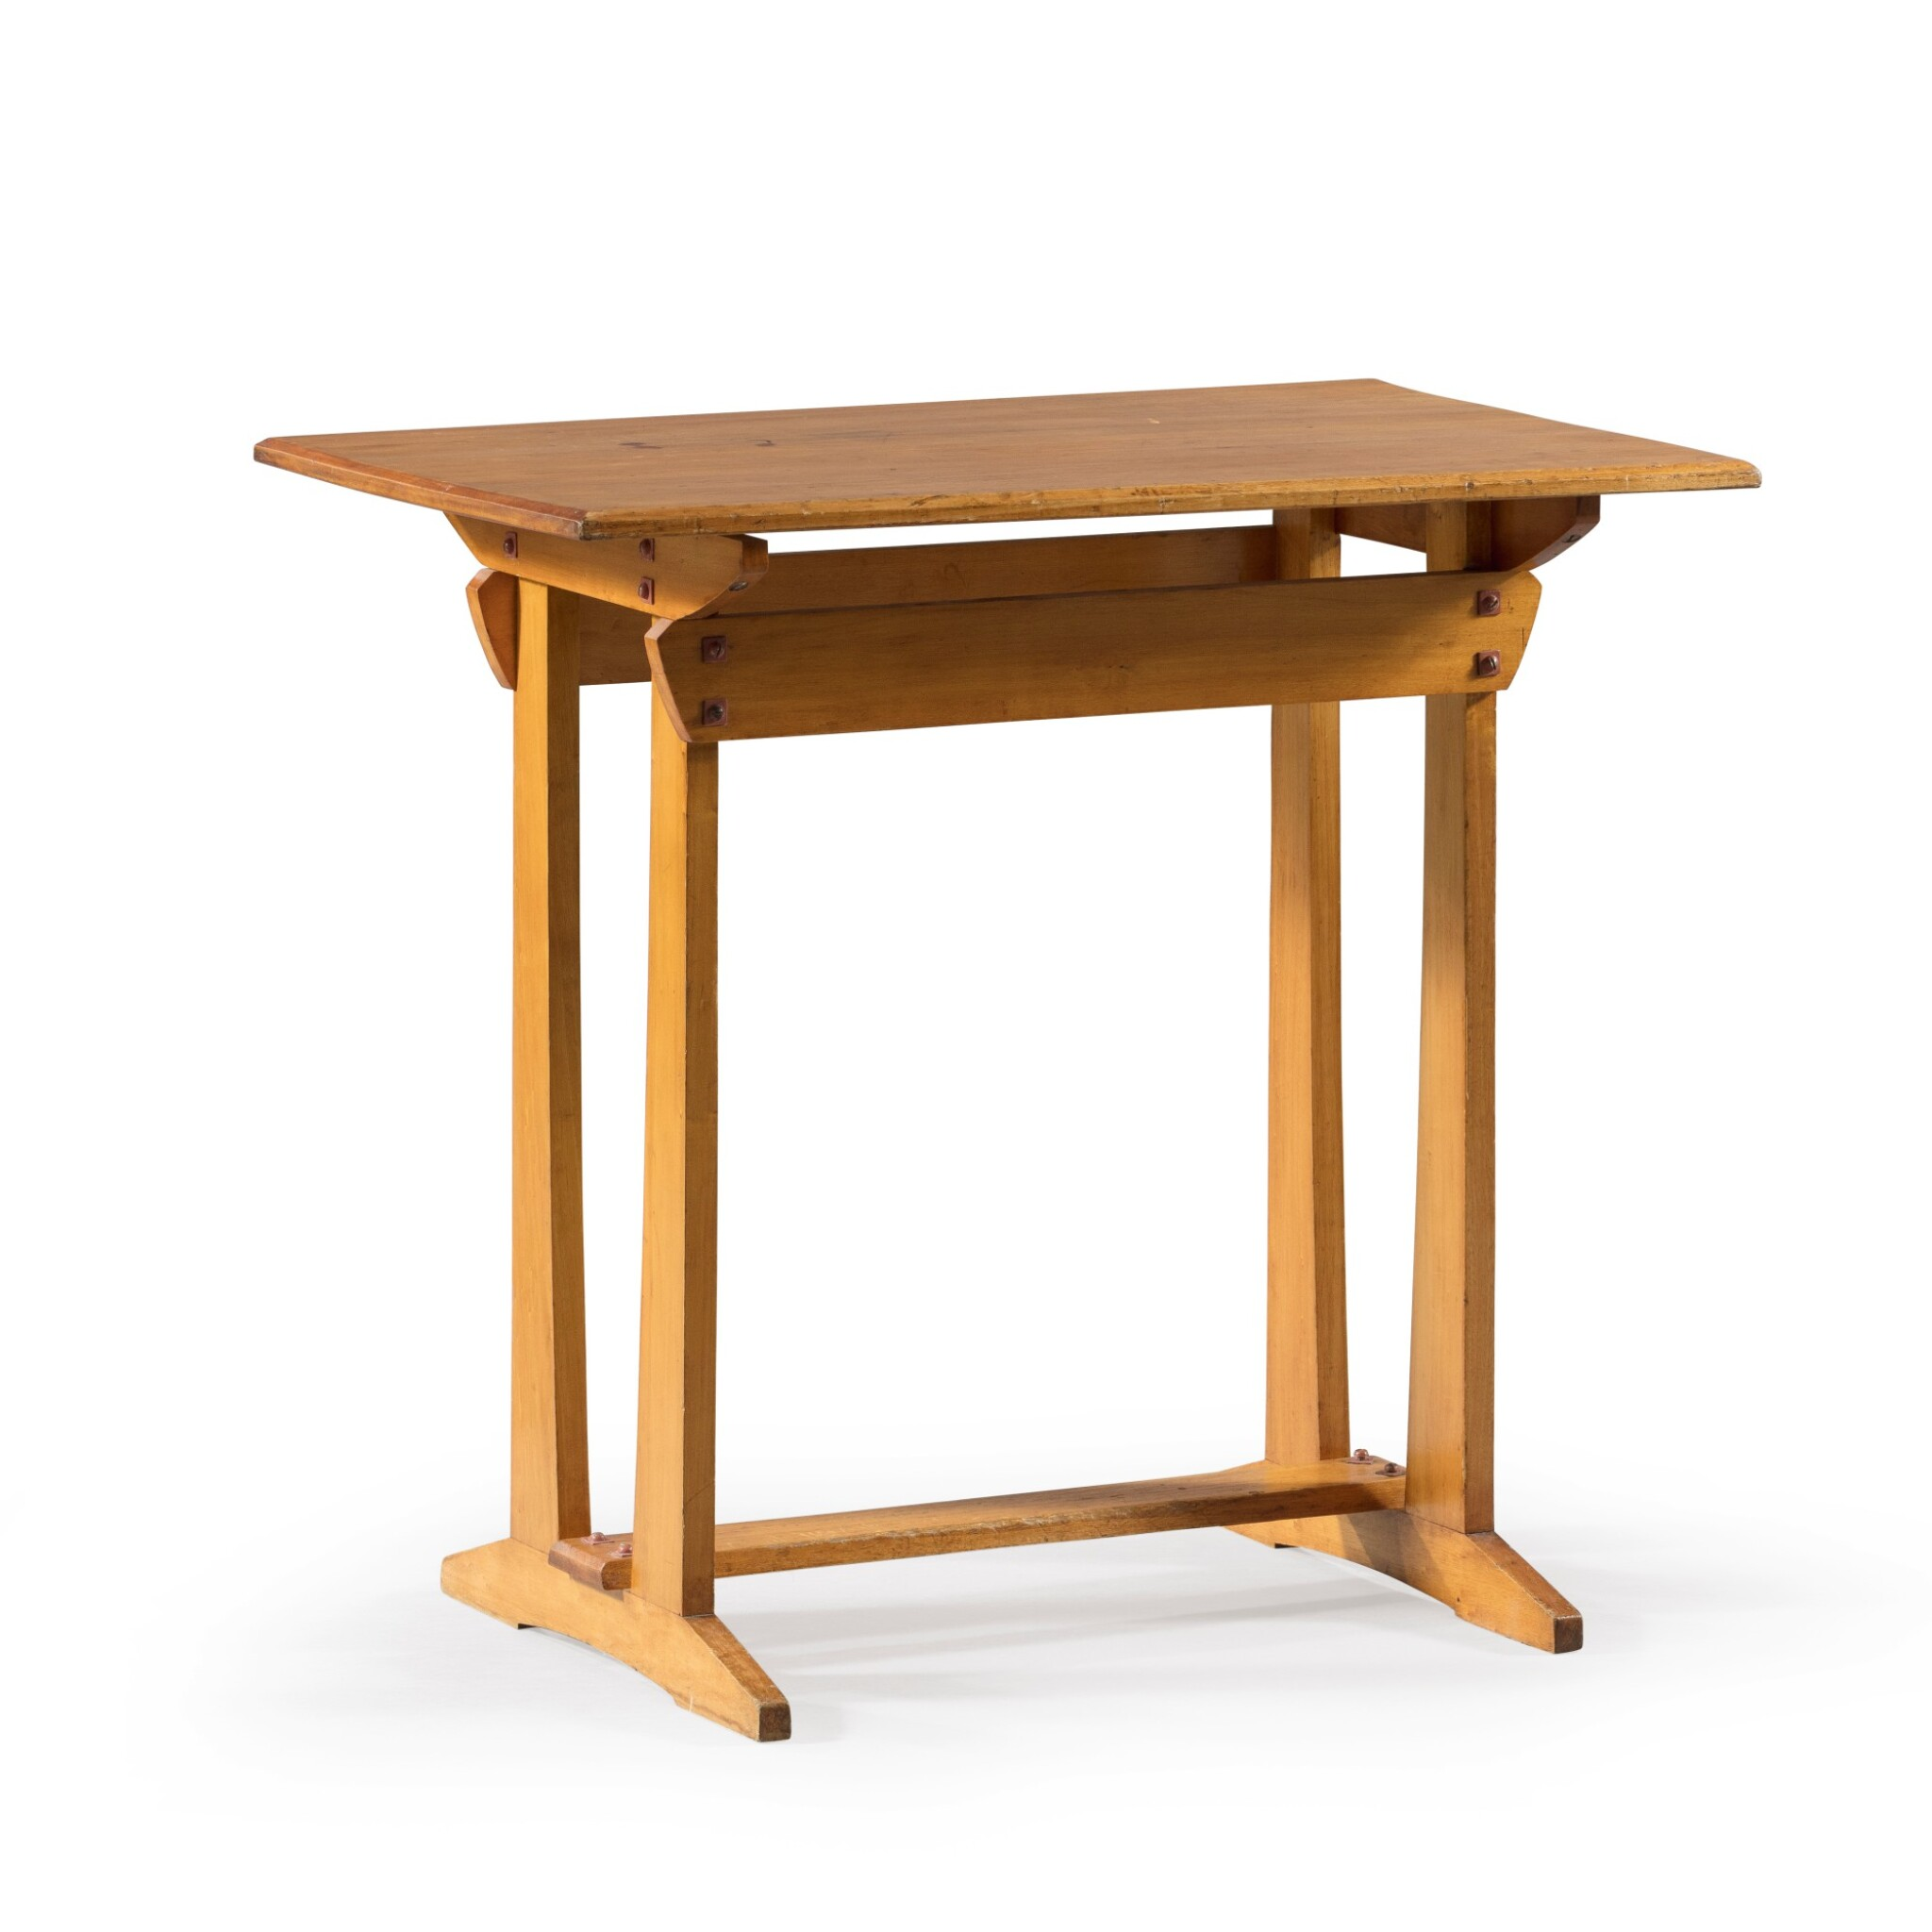 View full screen - View 1 of Lot 20. GUSTAVE SERRURIER-BOVY | SILEX TABLE, CIRCA 1904 [TABLE D'APPOINT SILEX, VERS 1904].